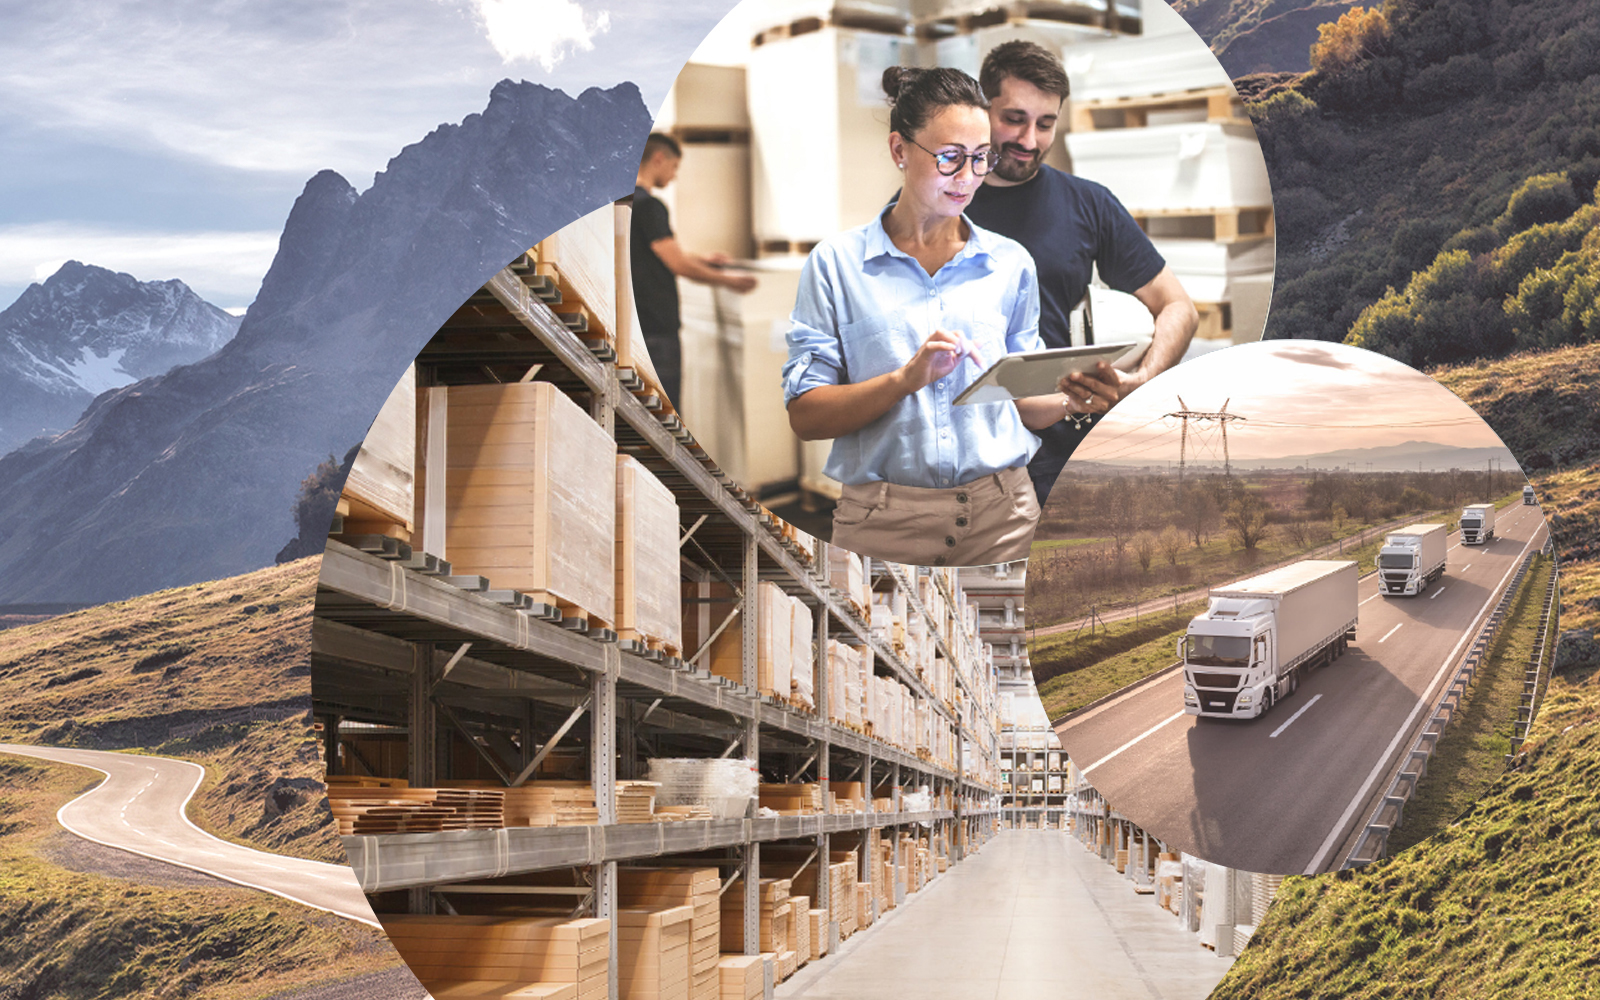 Picture of two people in a warehouse, next to it pictures of moving trucks and behind them pictures of a warehouse and a mountain road, digitalization of the supply chain with valantic's Connected Chain Manager